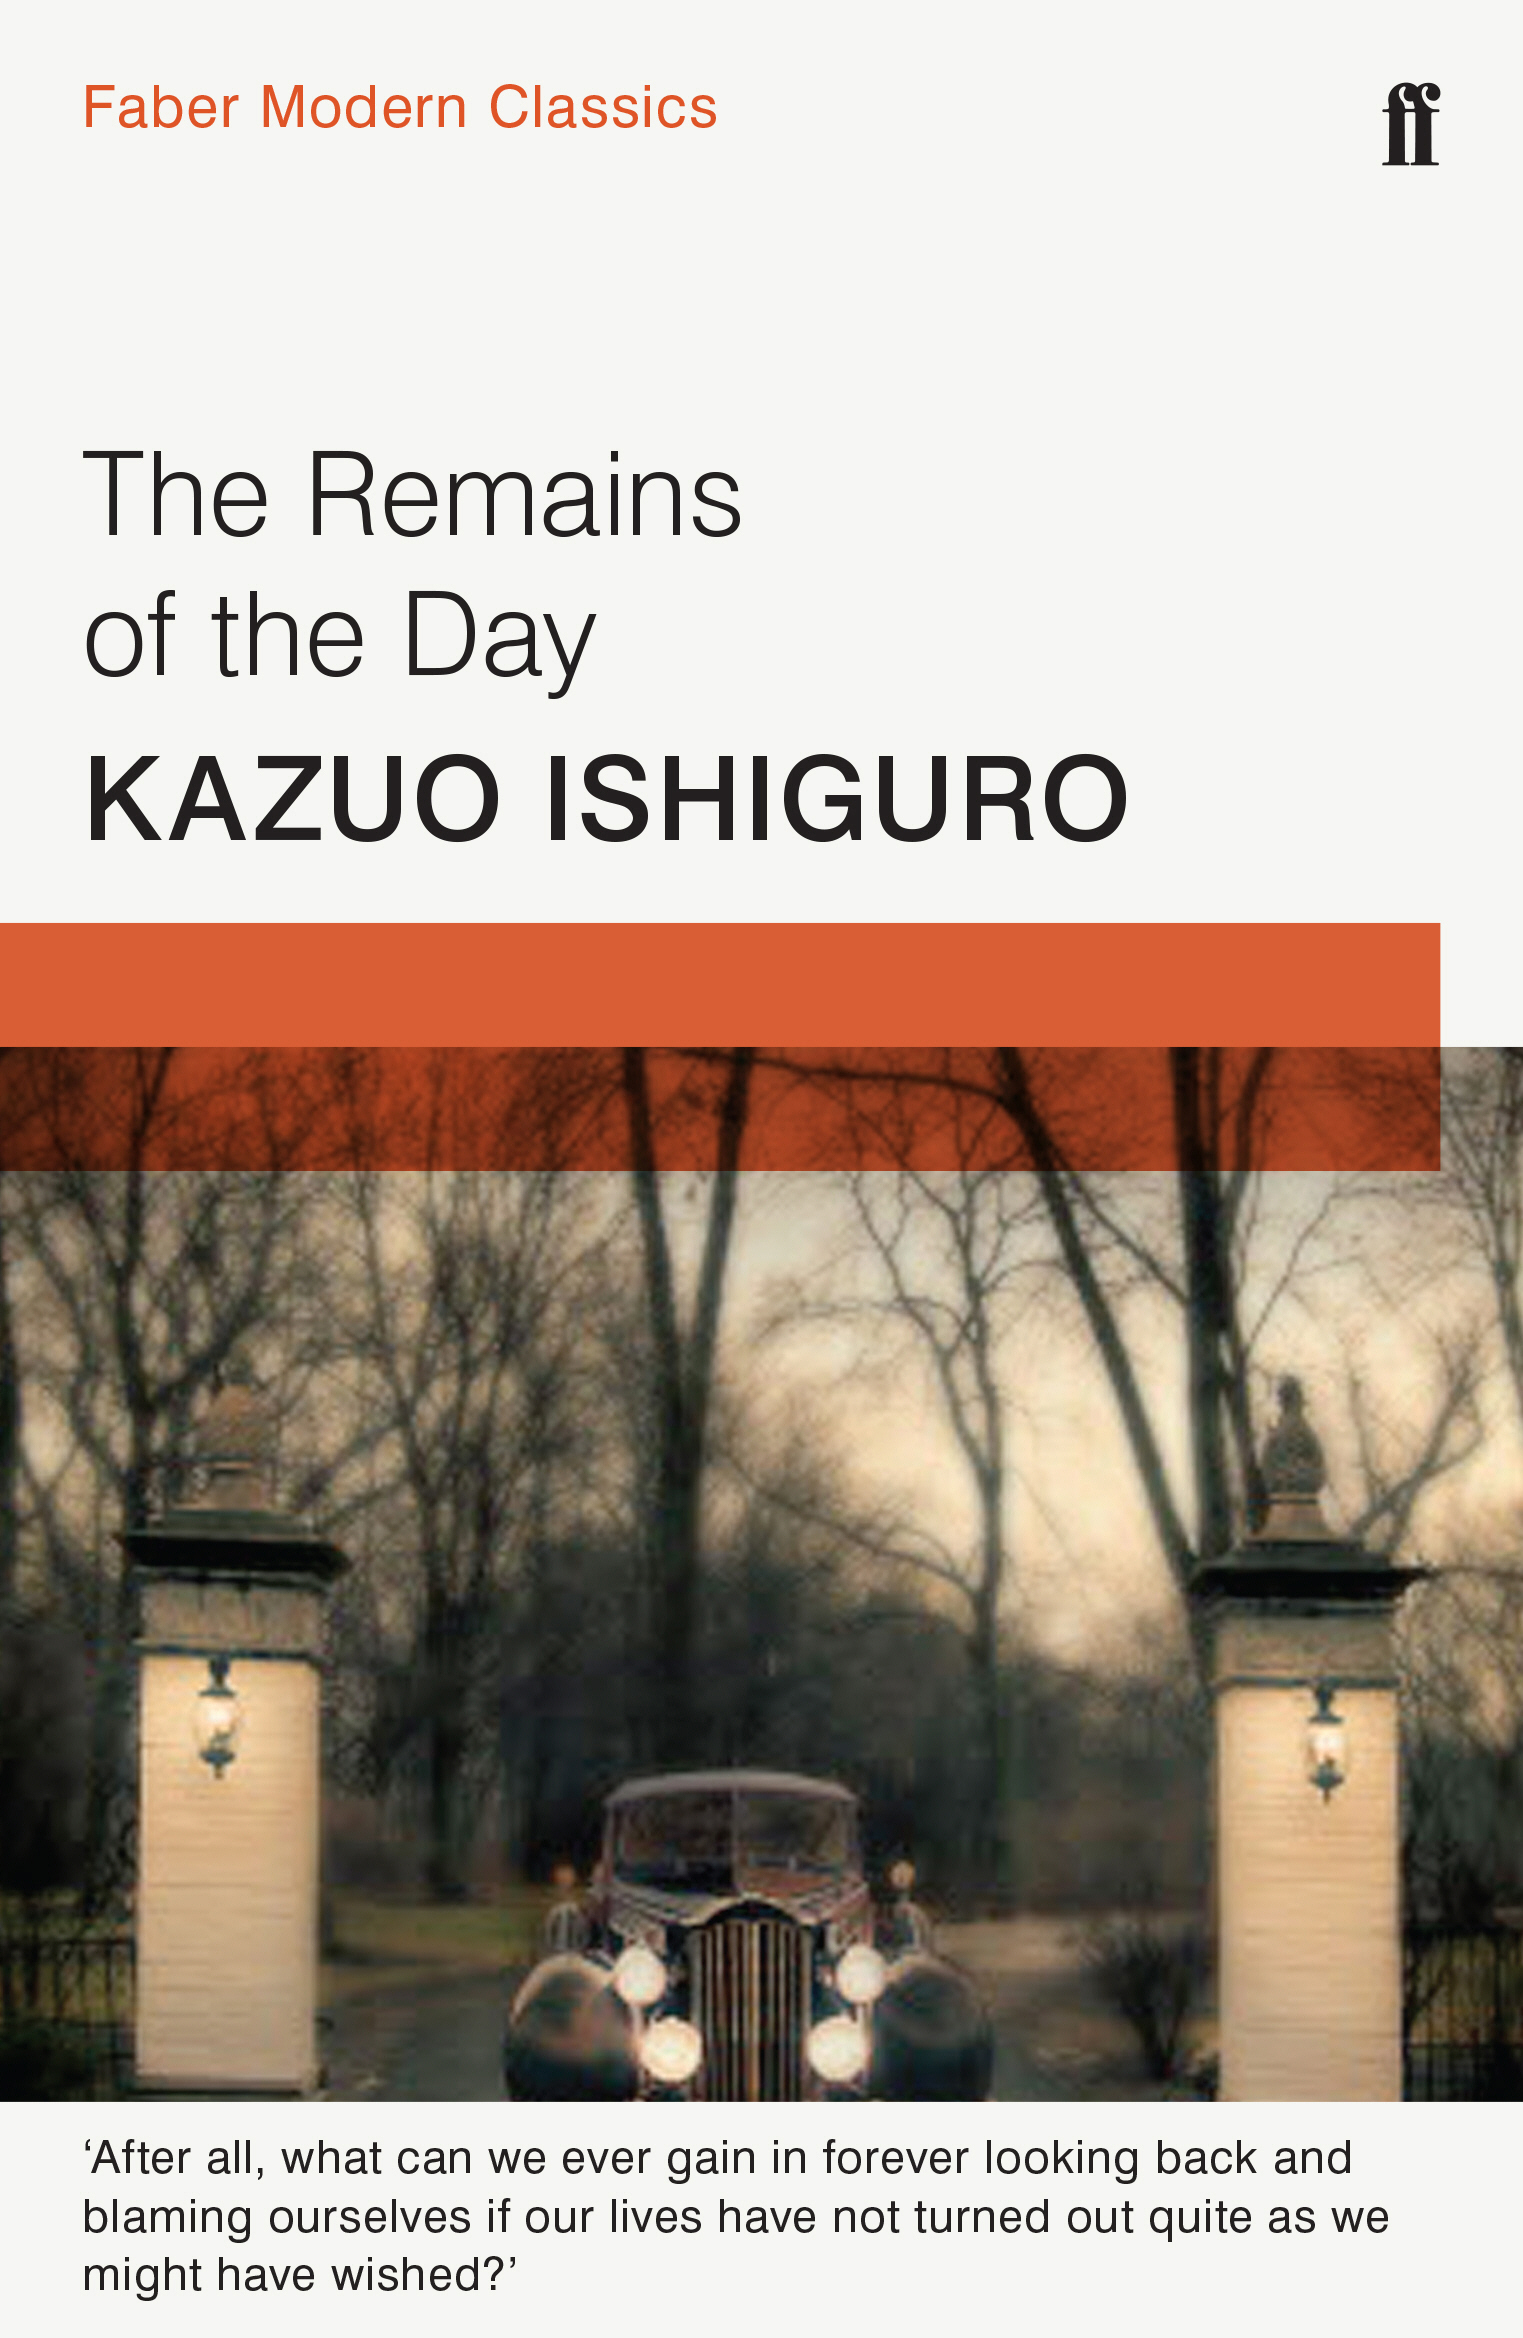 The Remains of the Day by Kazuo Ishiguro, ISBN: 9780571322732